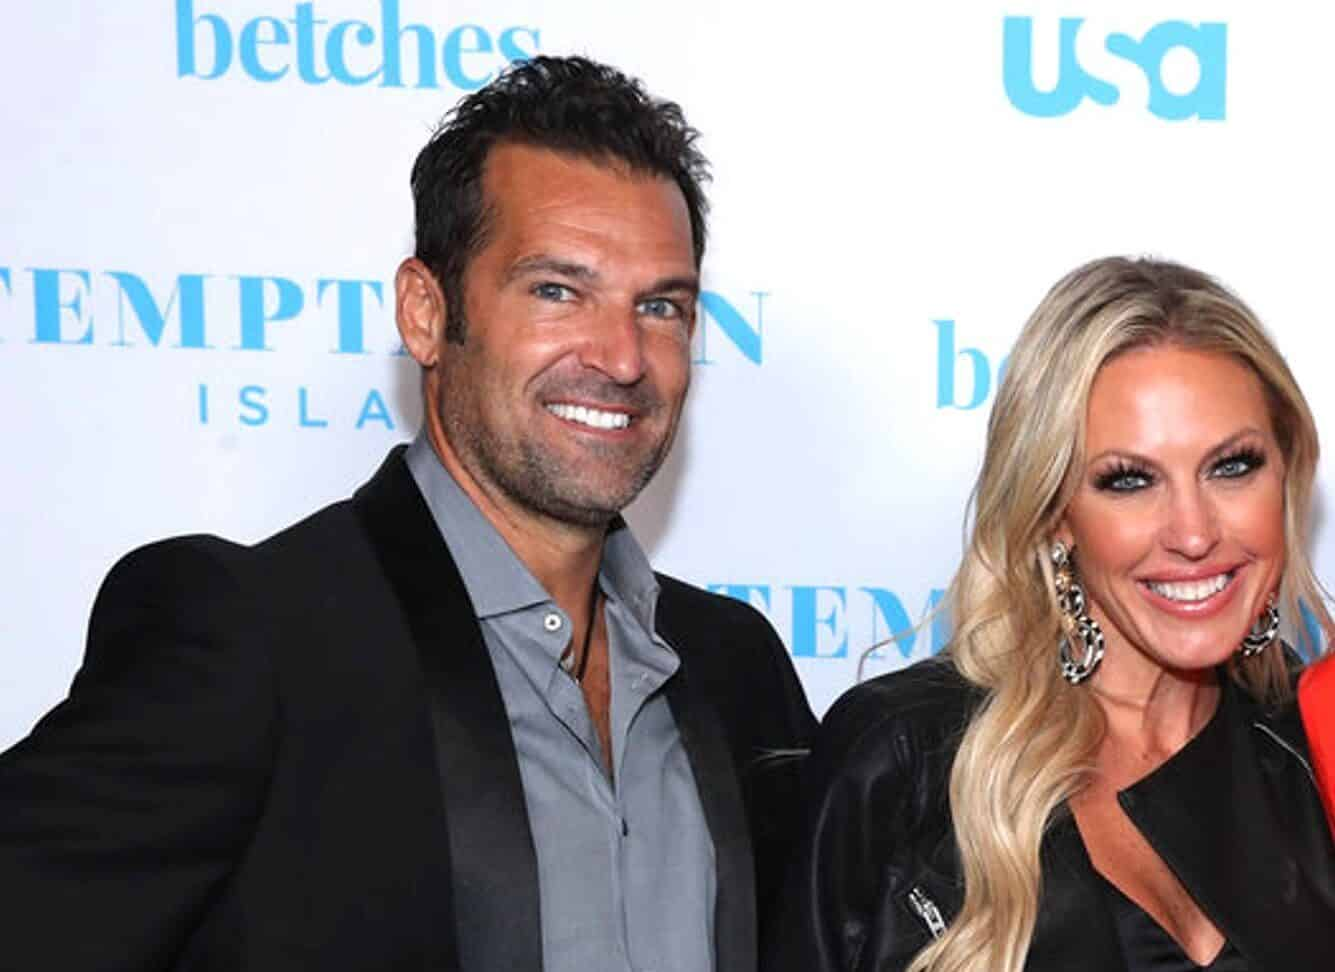 PHOTO: RHOC Star Sean Burke Steps Out With New Girlfriend as They're Spotted Making Out, Plus Wife Braunwyn Says She's Done After Catching Woman In His Bed